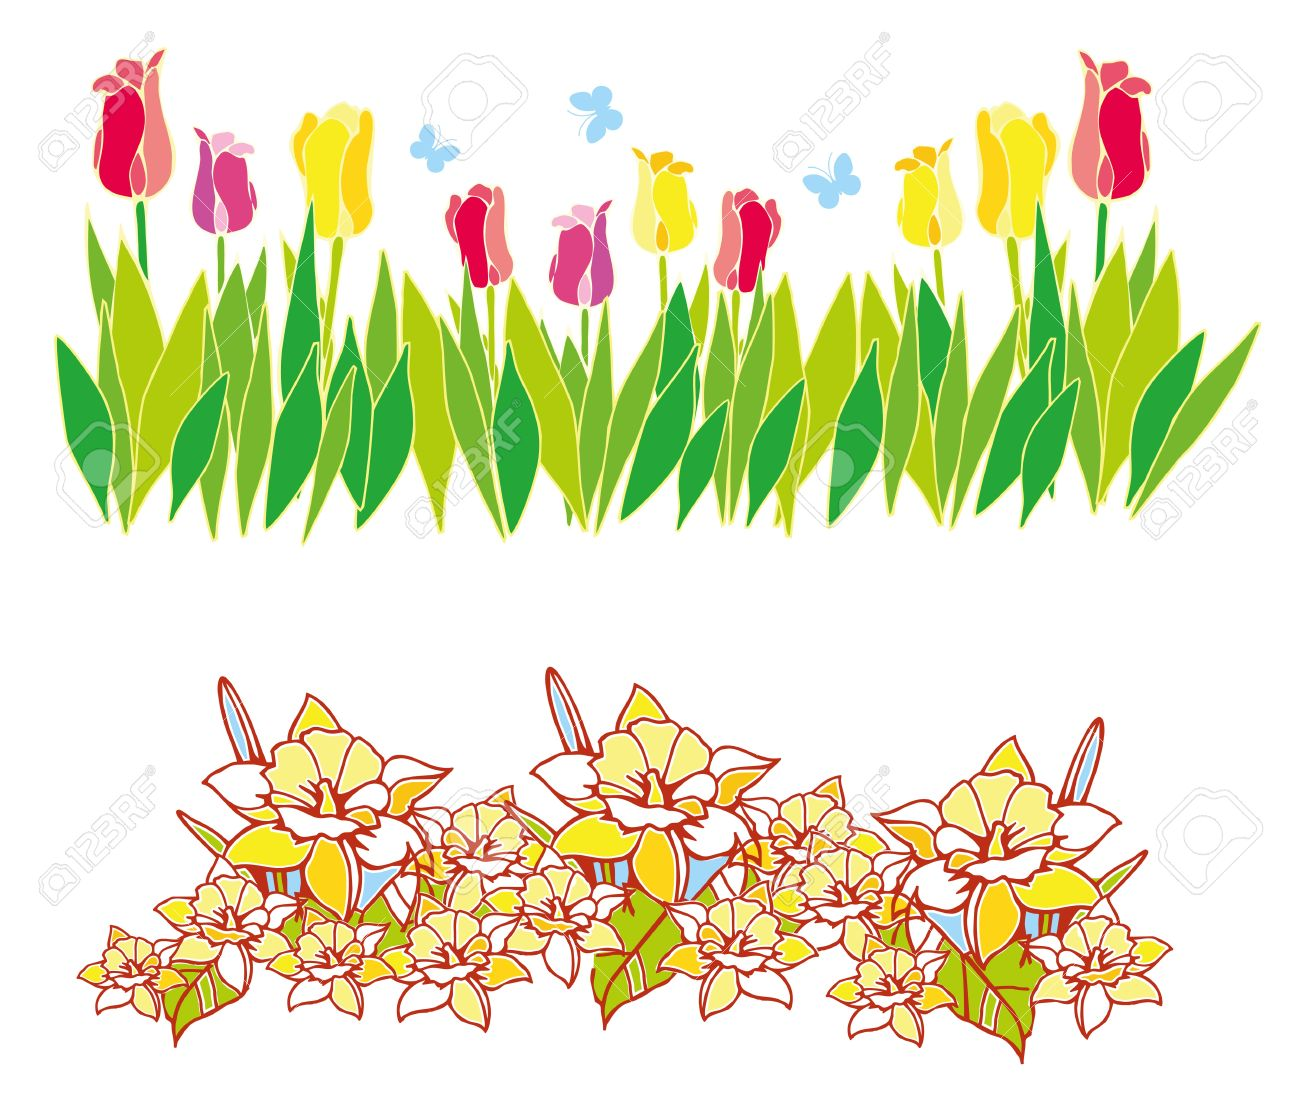 Border of spring flowers with green leaves royalty free cliparts border of spring flowers with green leaves stock vector 12866104 mightylinksfo